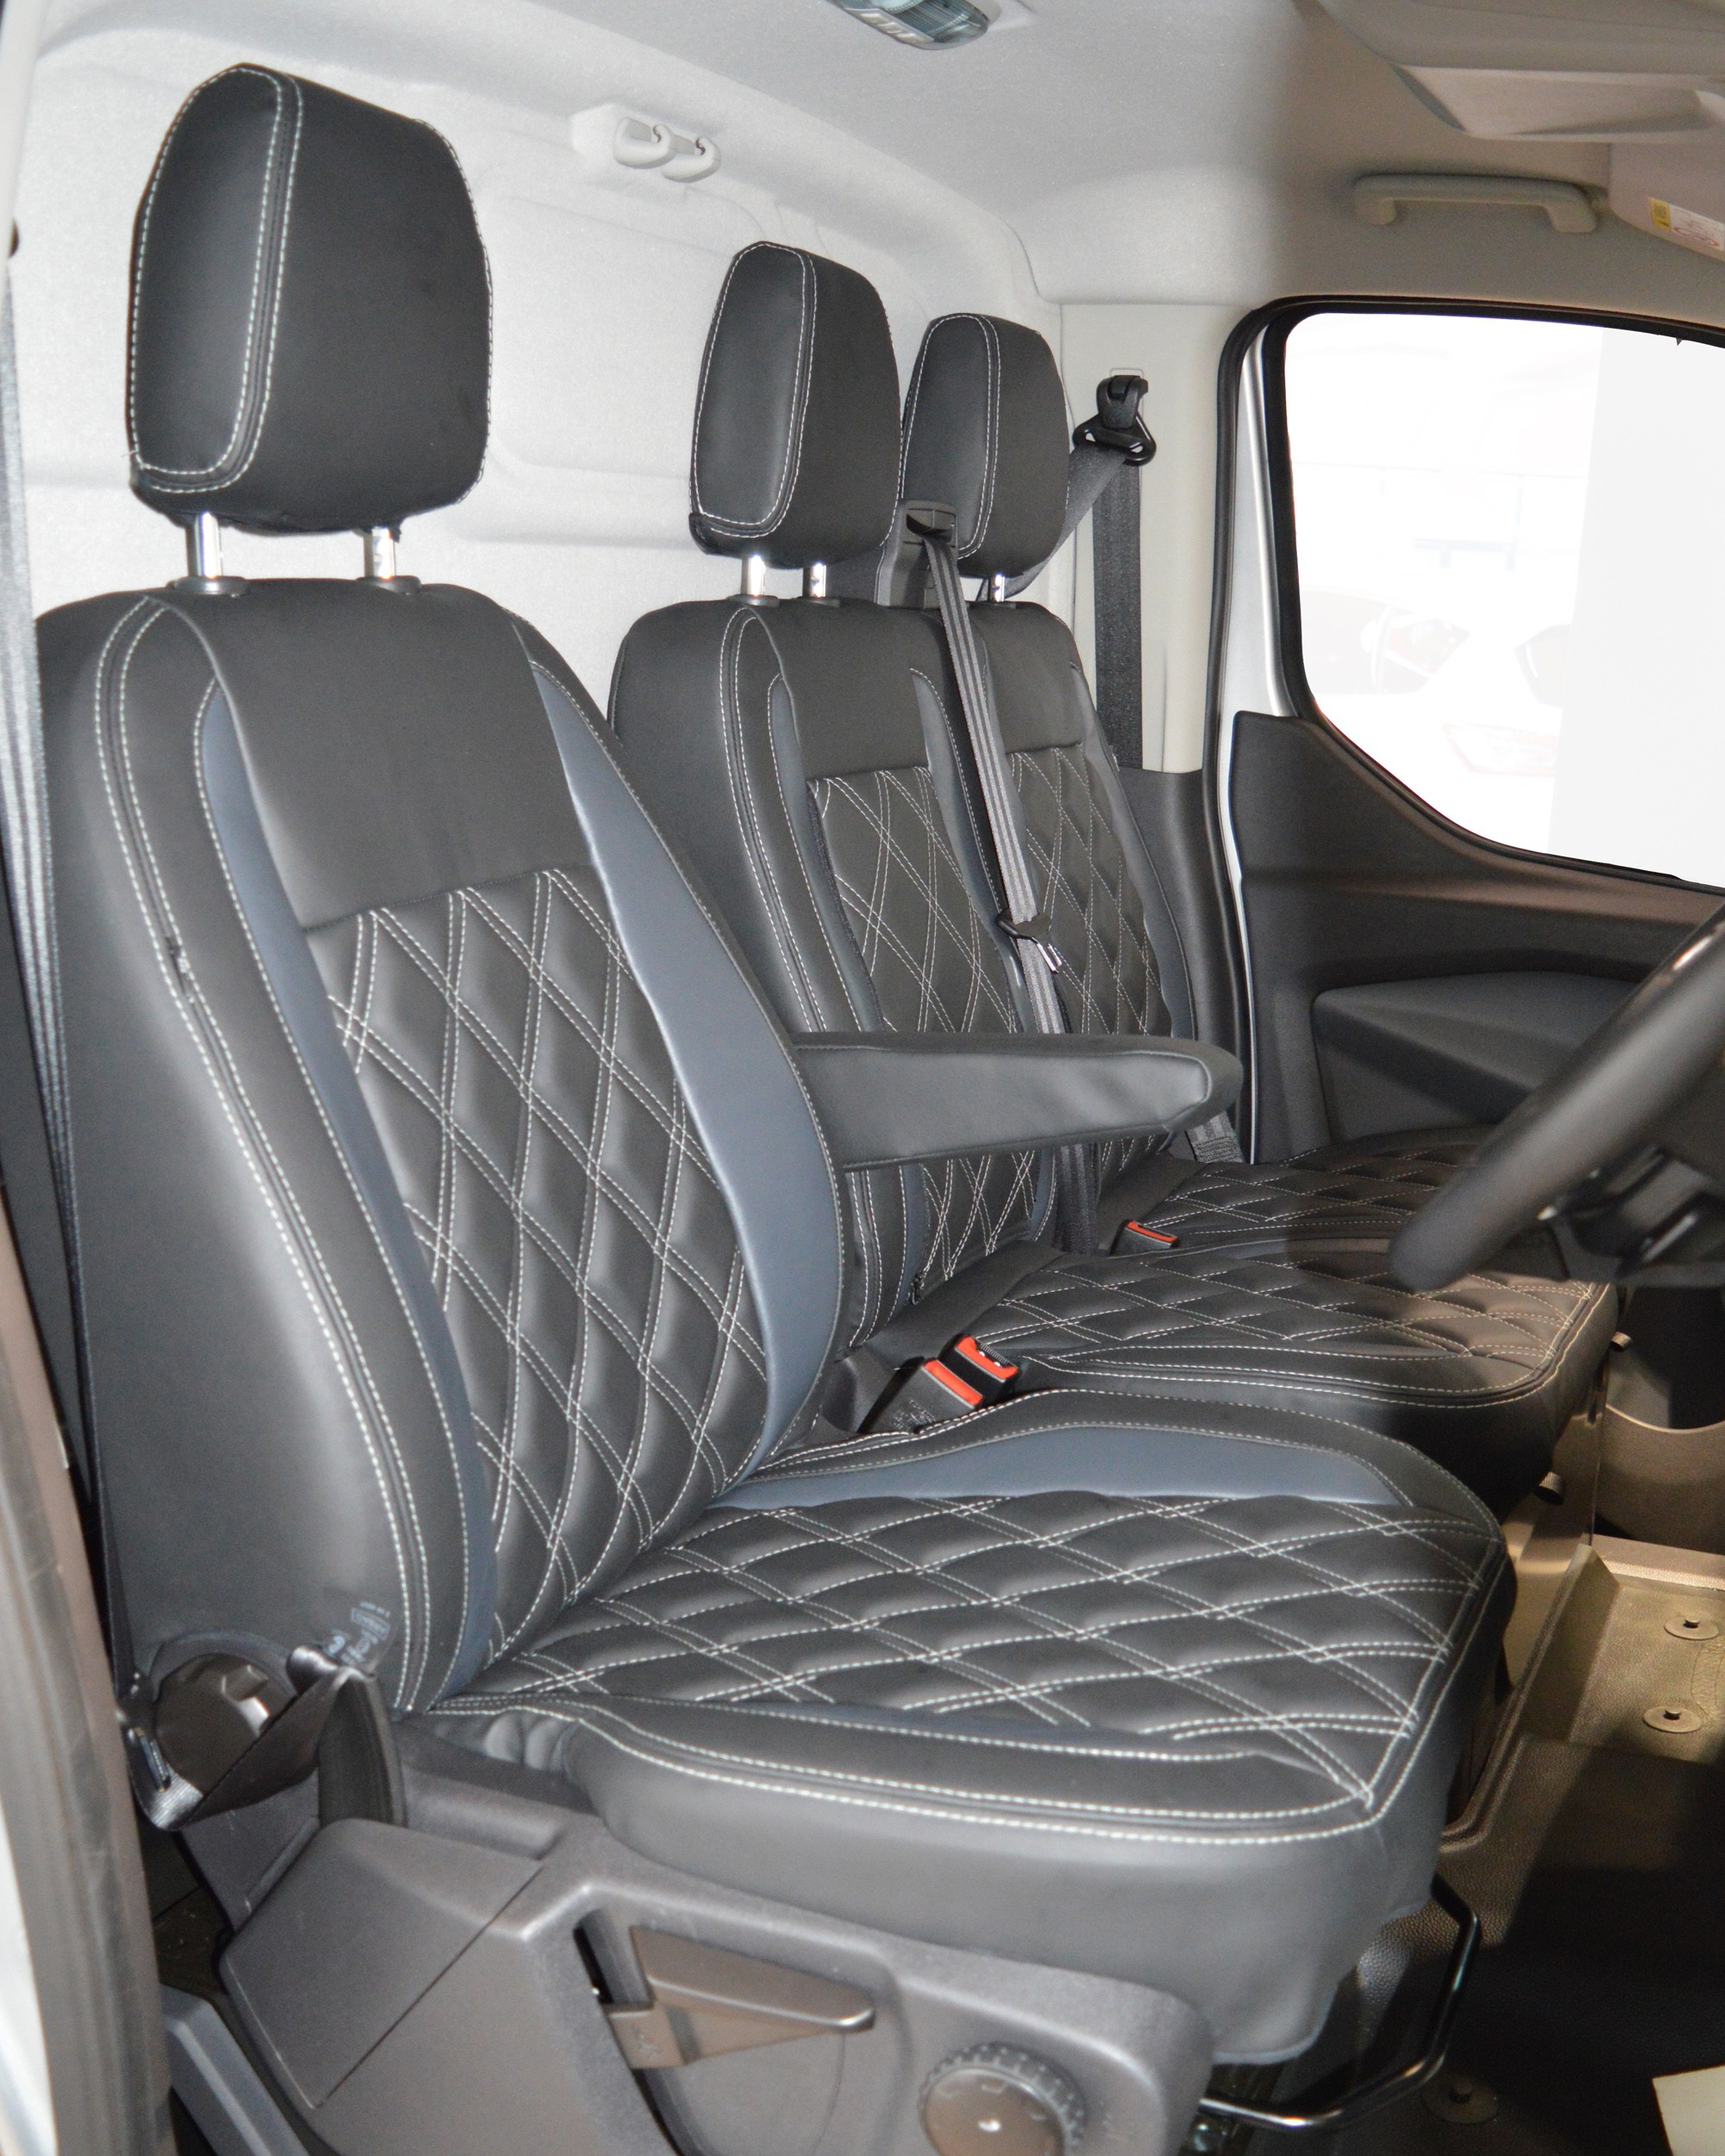 Ford Transit Custom Seat Covers - front seats